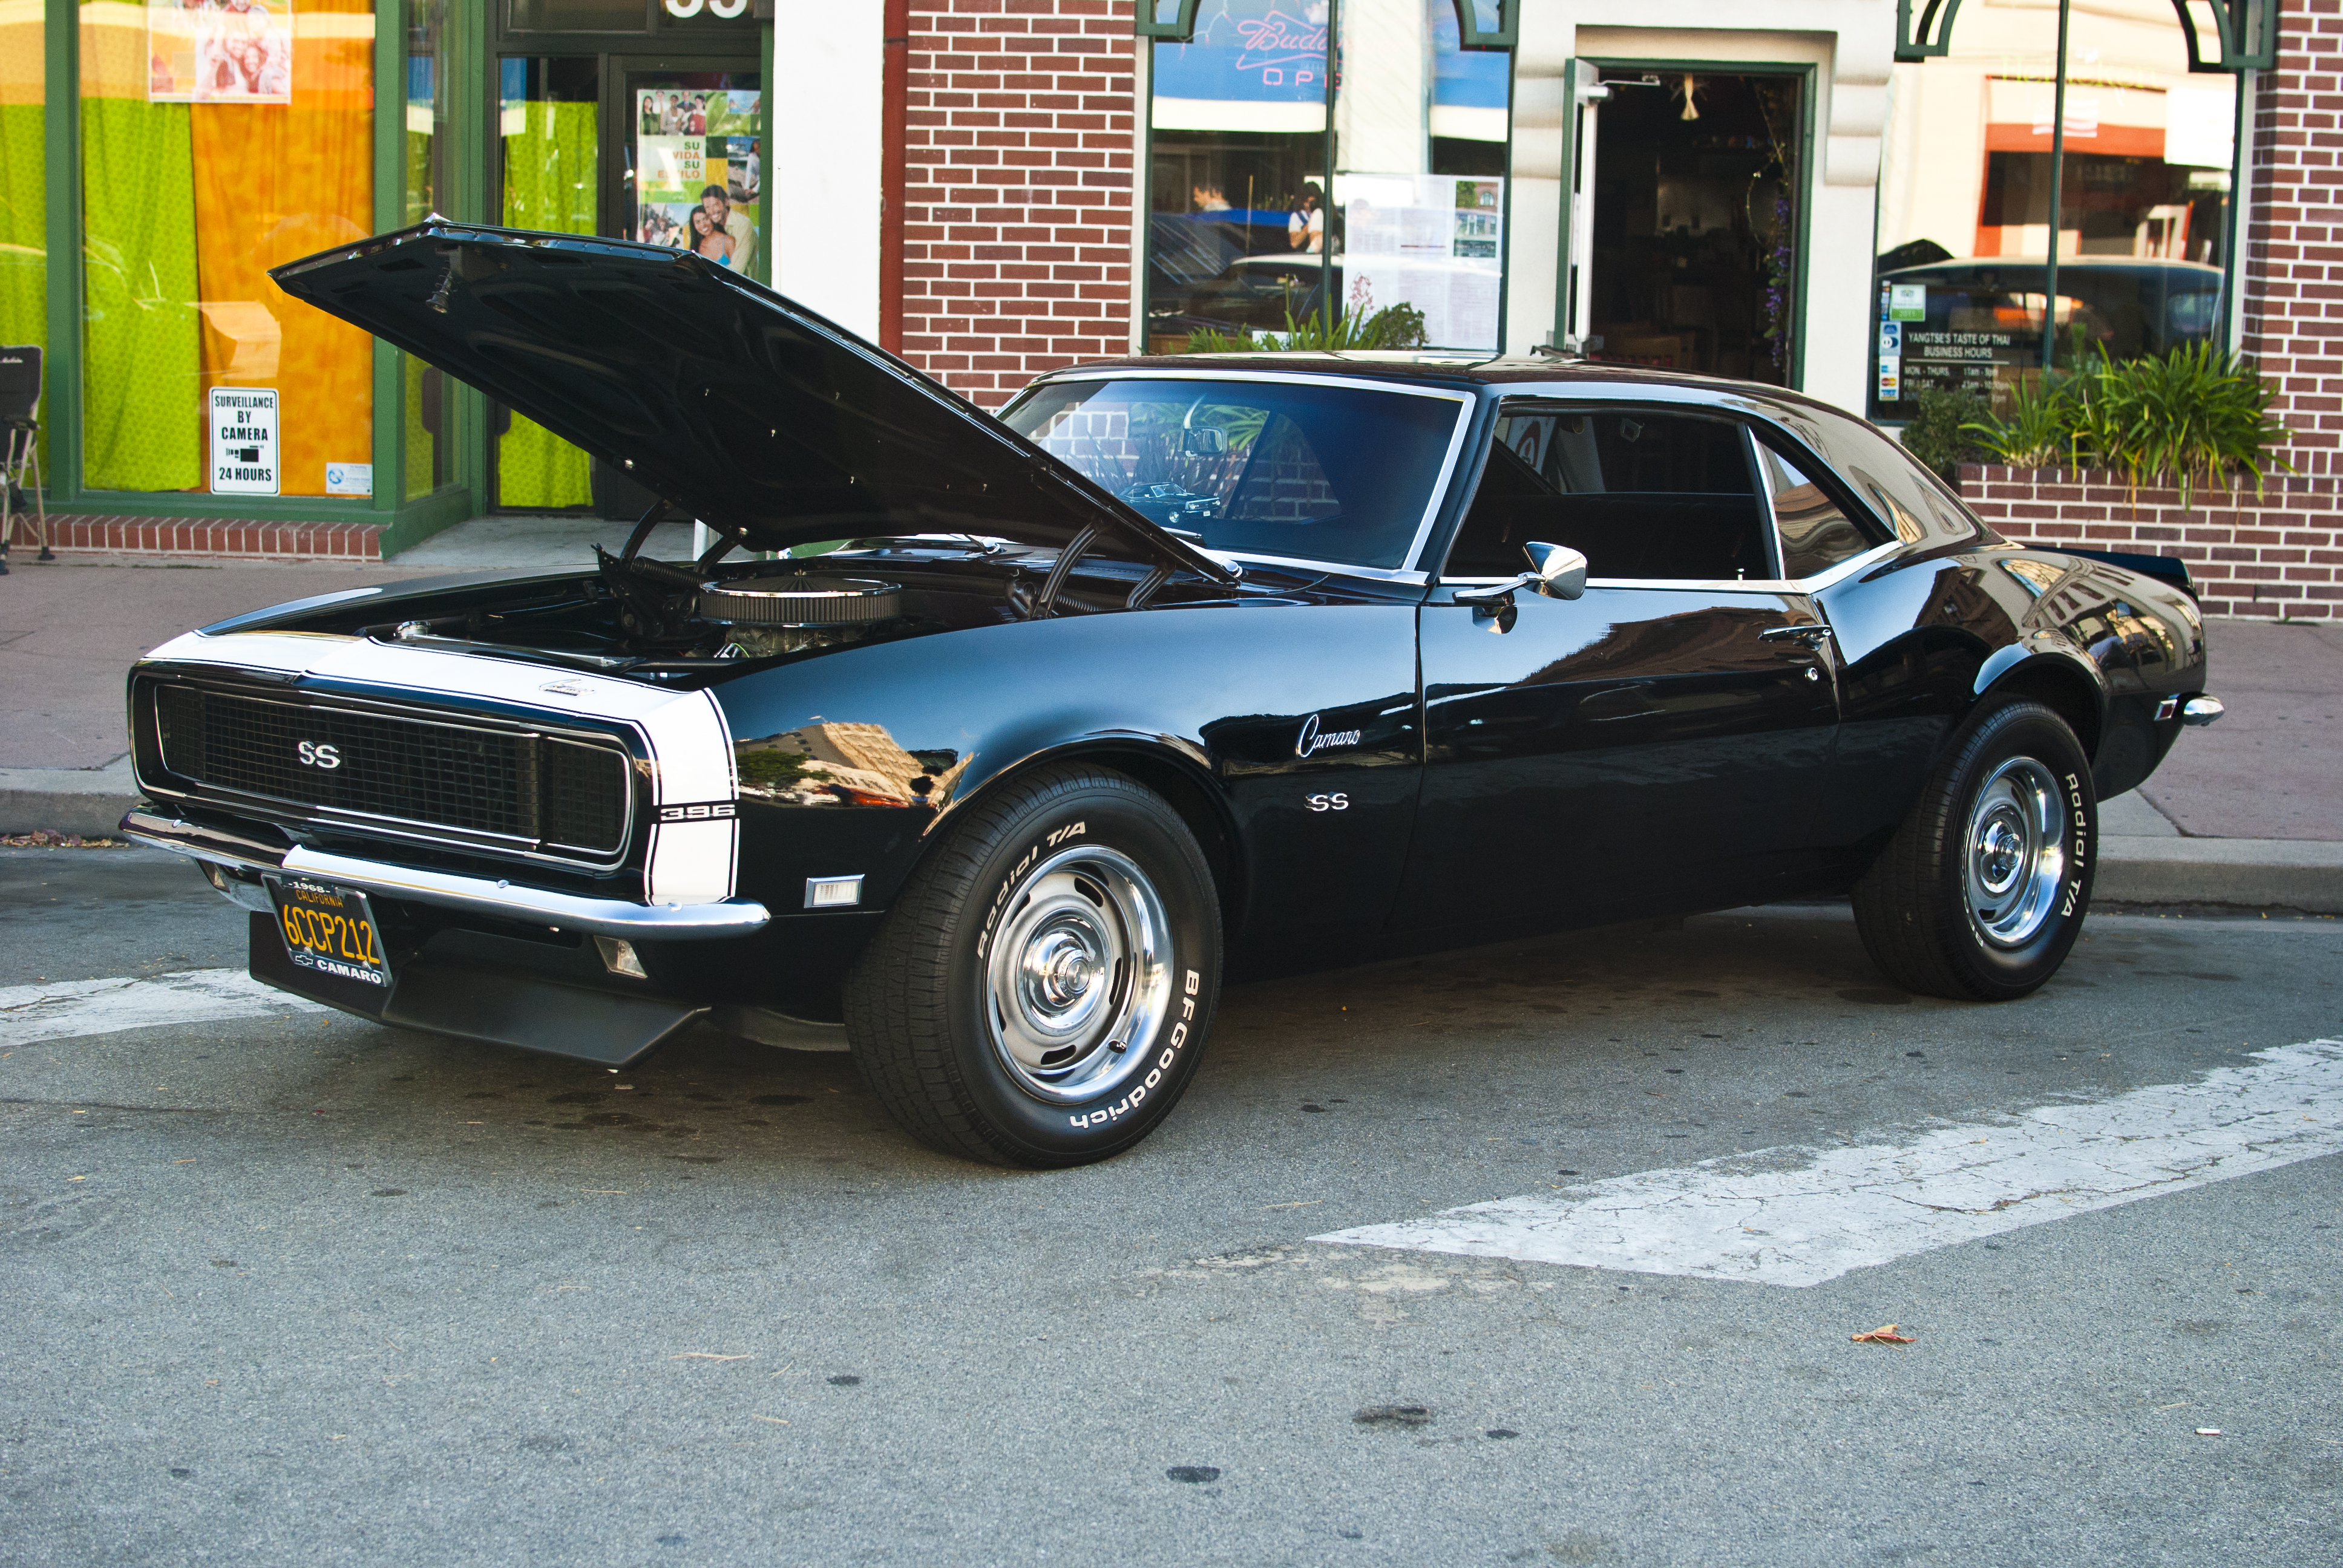 Classic Camaro By Brandonlee88 On Deviantart